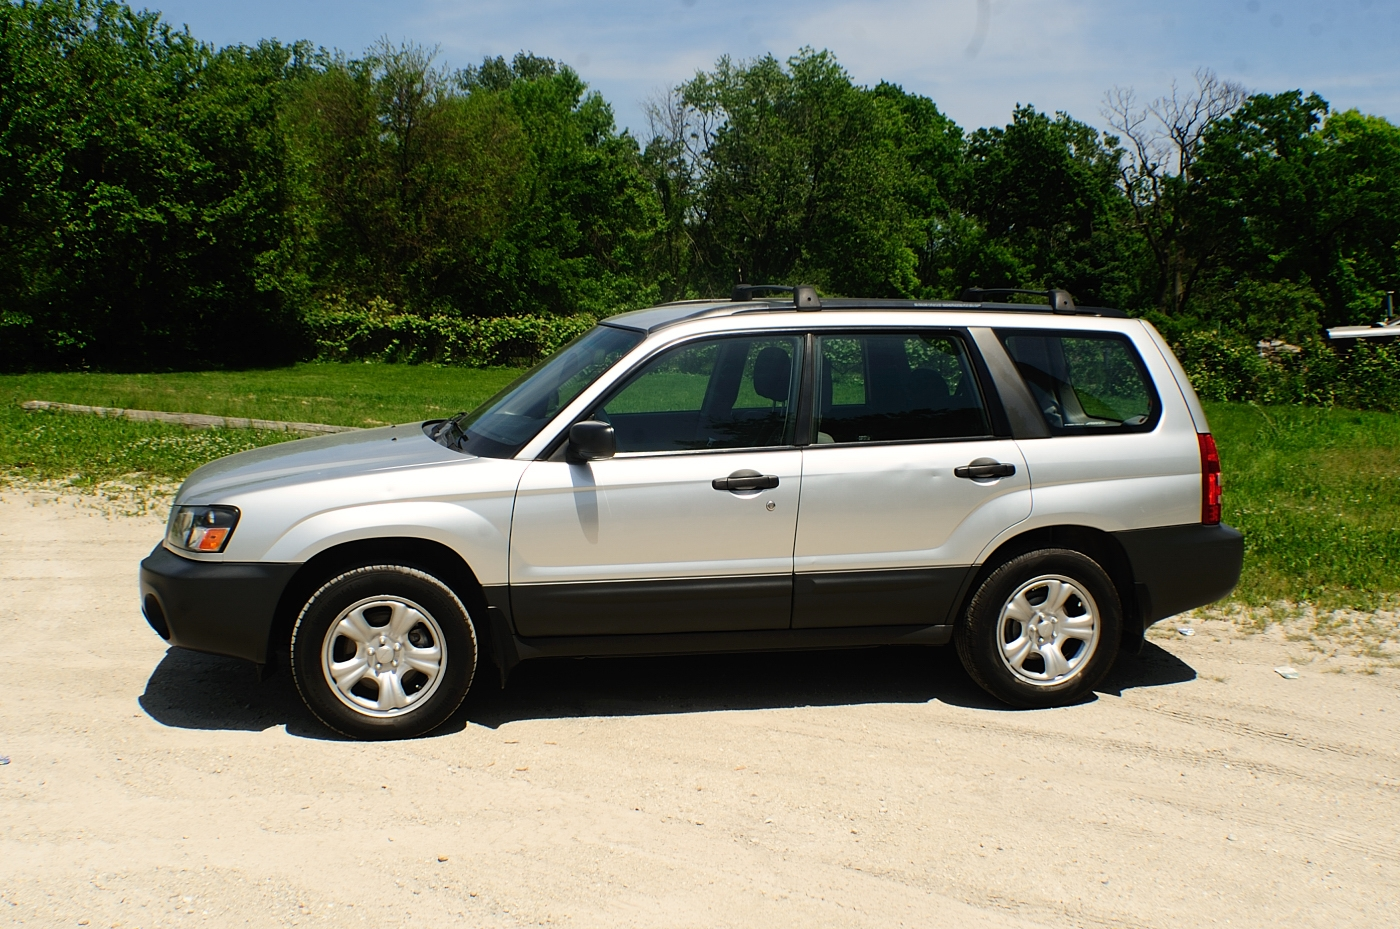 2005 Subaru Forester AWD Silver Used Wagon Sale Antioch Zion Waukegan Lake County Illinois